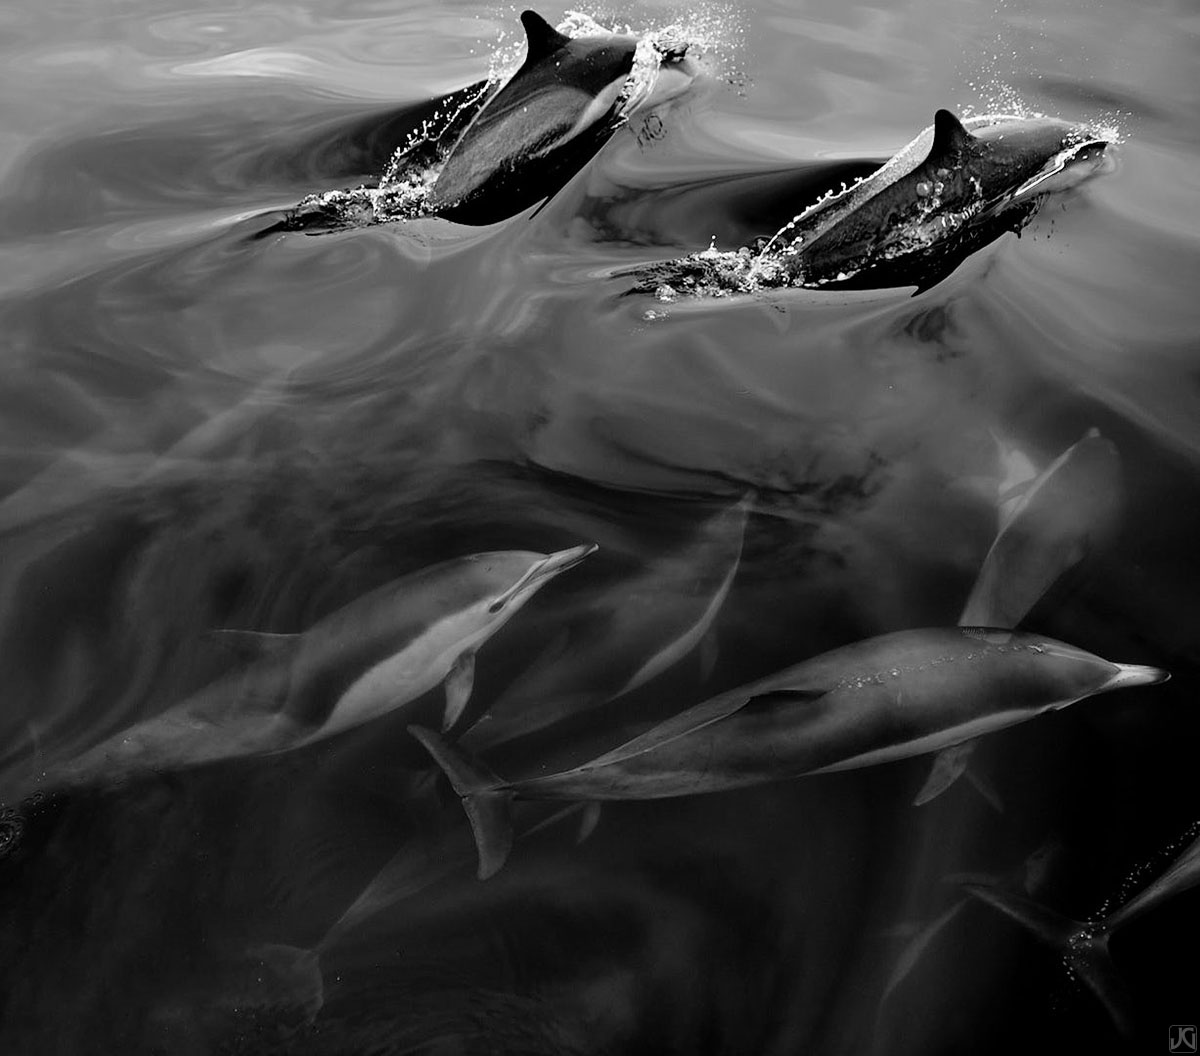 Dolphins from a large pod swim along together beneath two surfacing members.